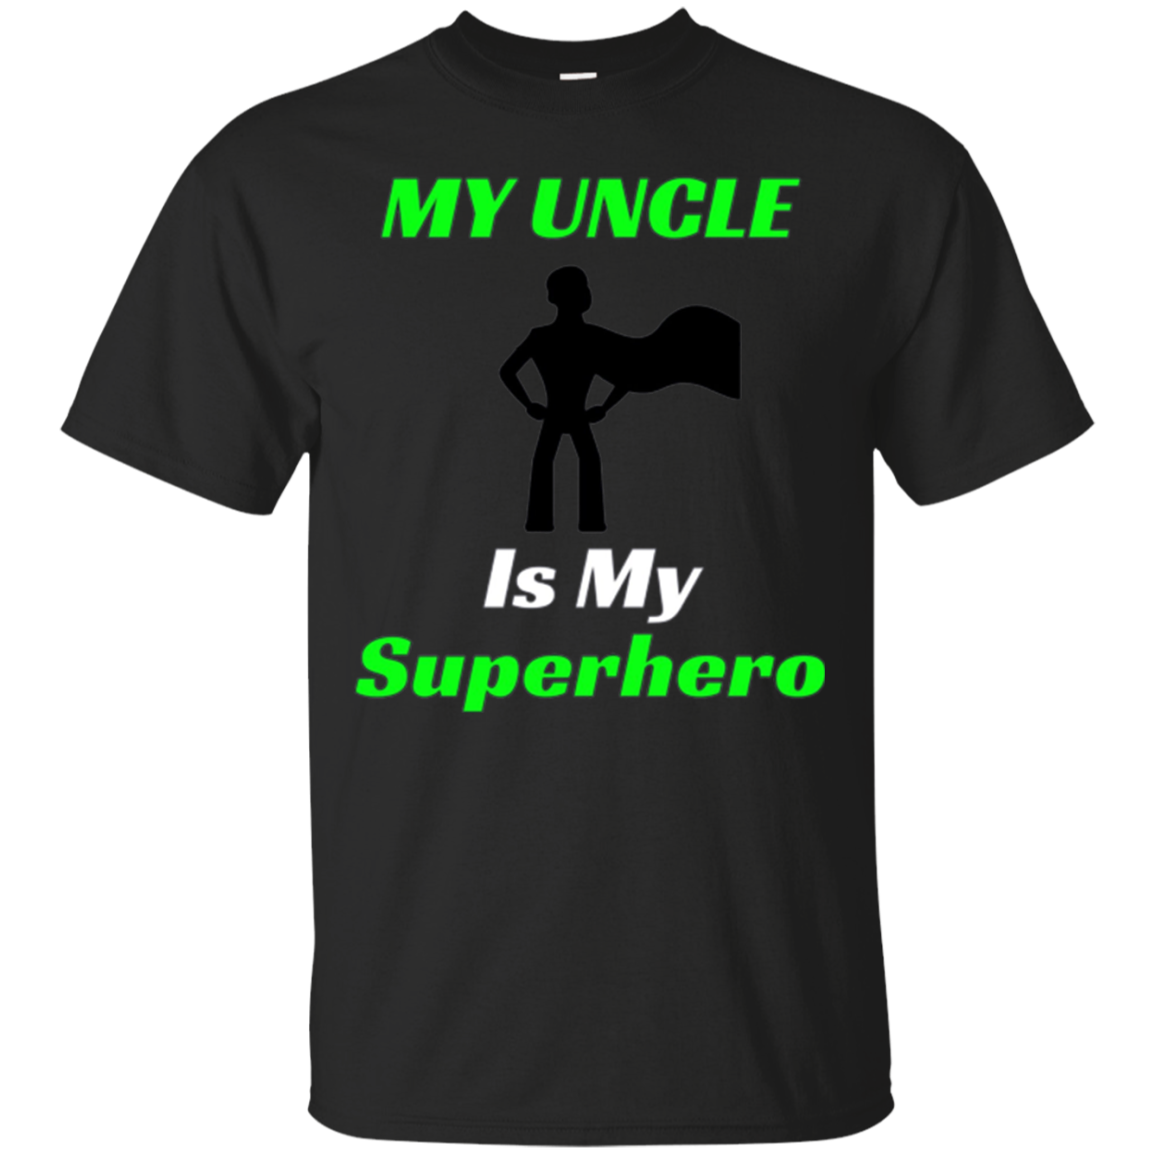 Uncle Superhero: My Uncle is My Superhero T-Shirt